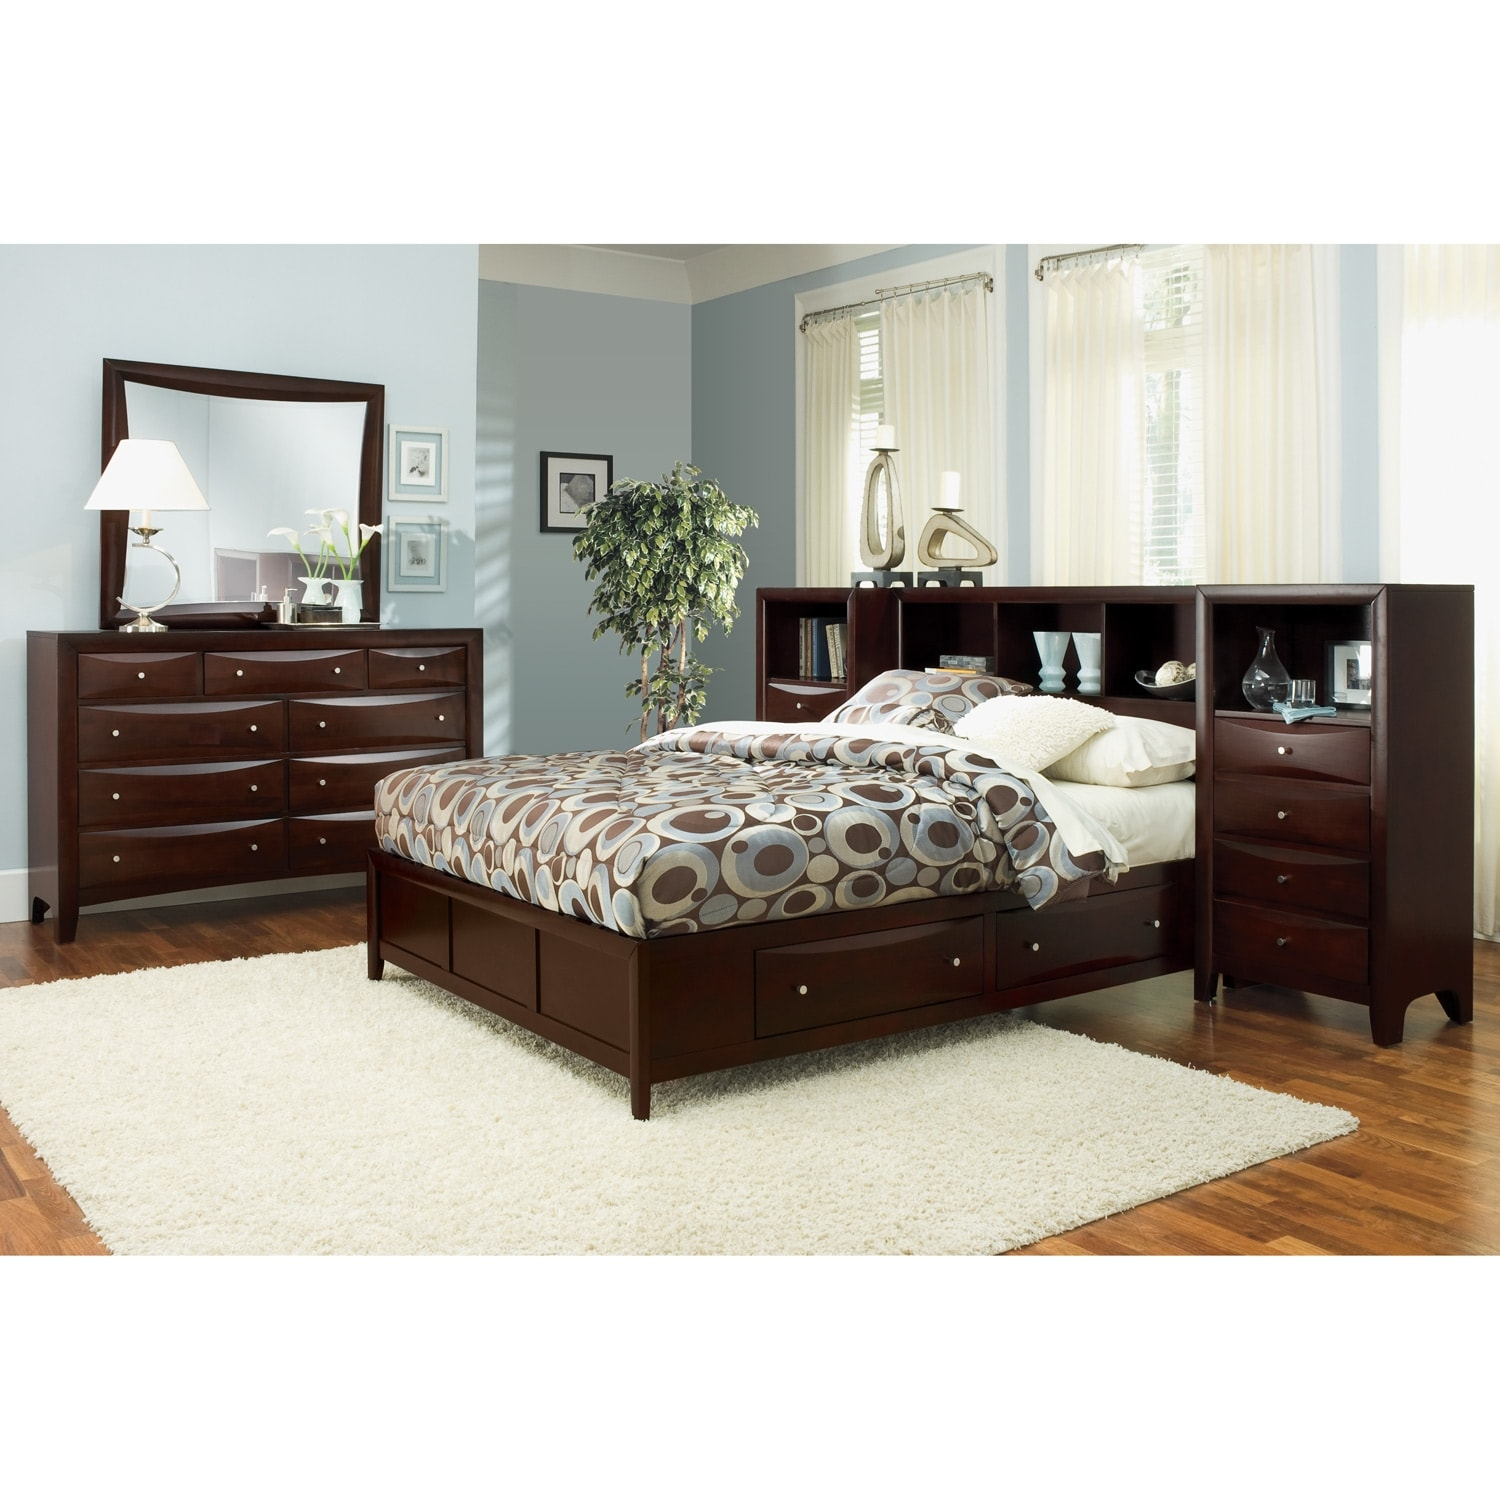 Single Bedroom Furniture Sets Master Bedroom Furniture Sets The Most Modern Furniture